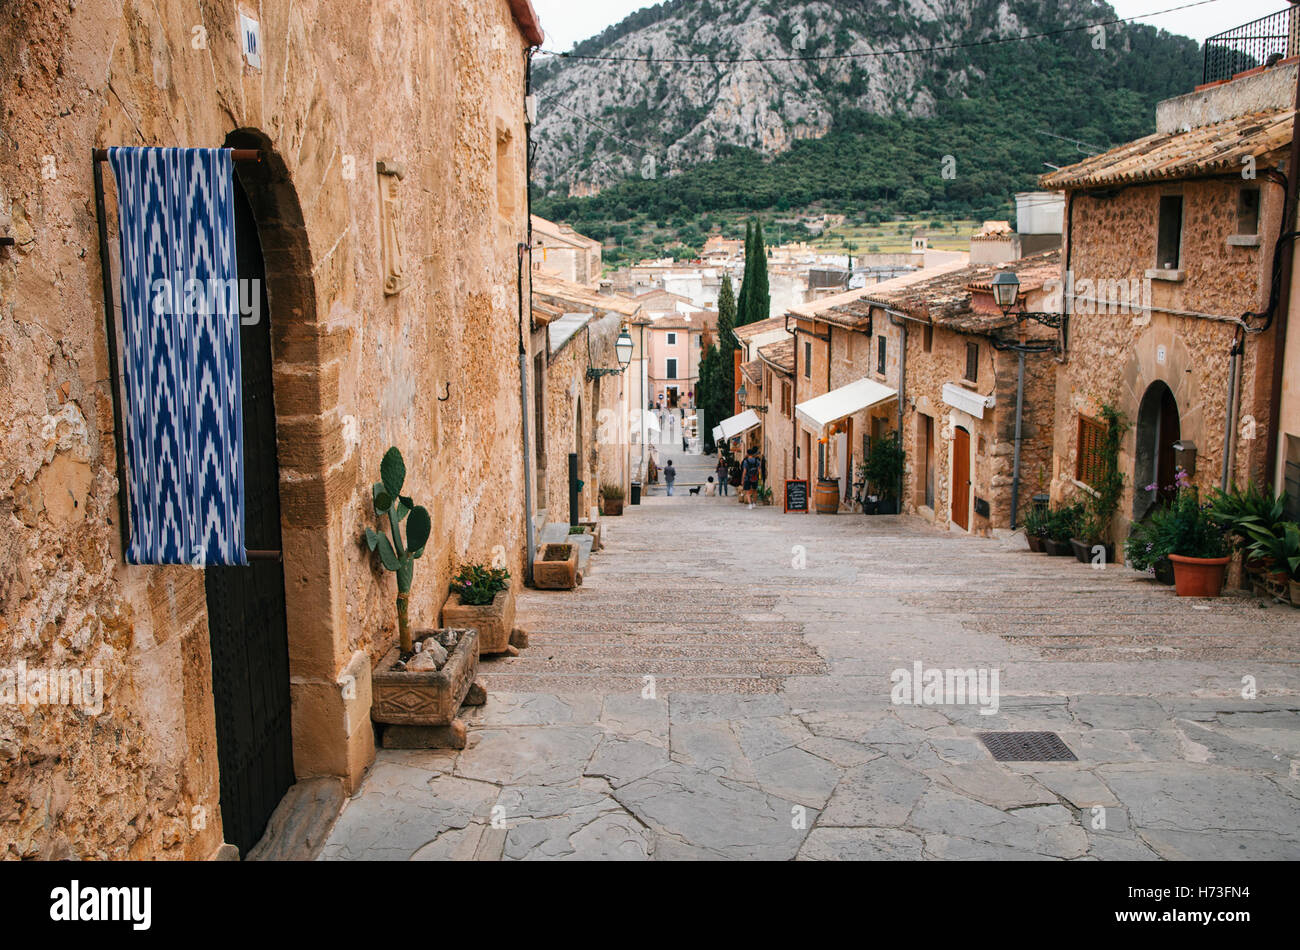 Long stairway Via Crusis with a lot of steps to the Calvary church from the center of Pollensa, Mallorca. - Stock Image